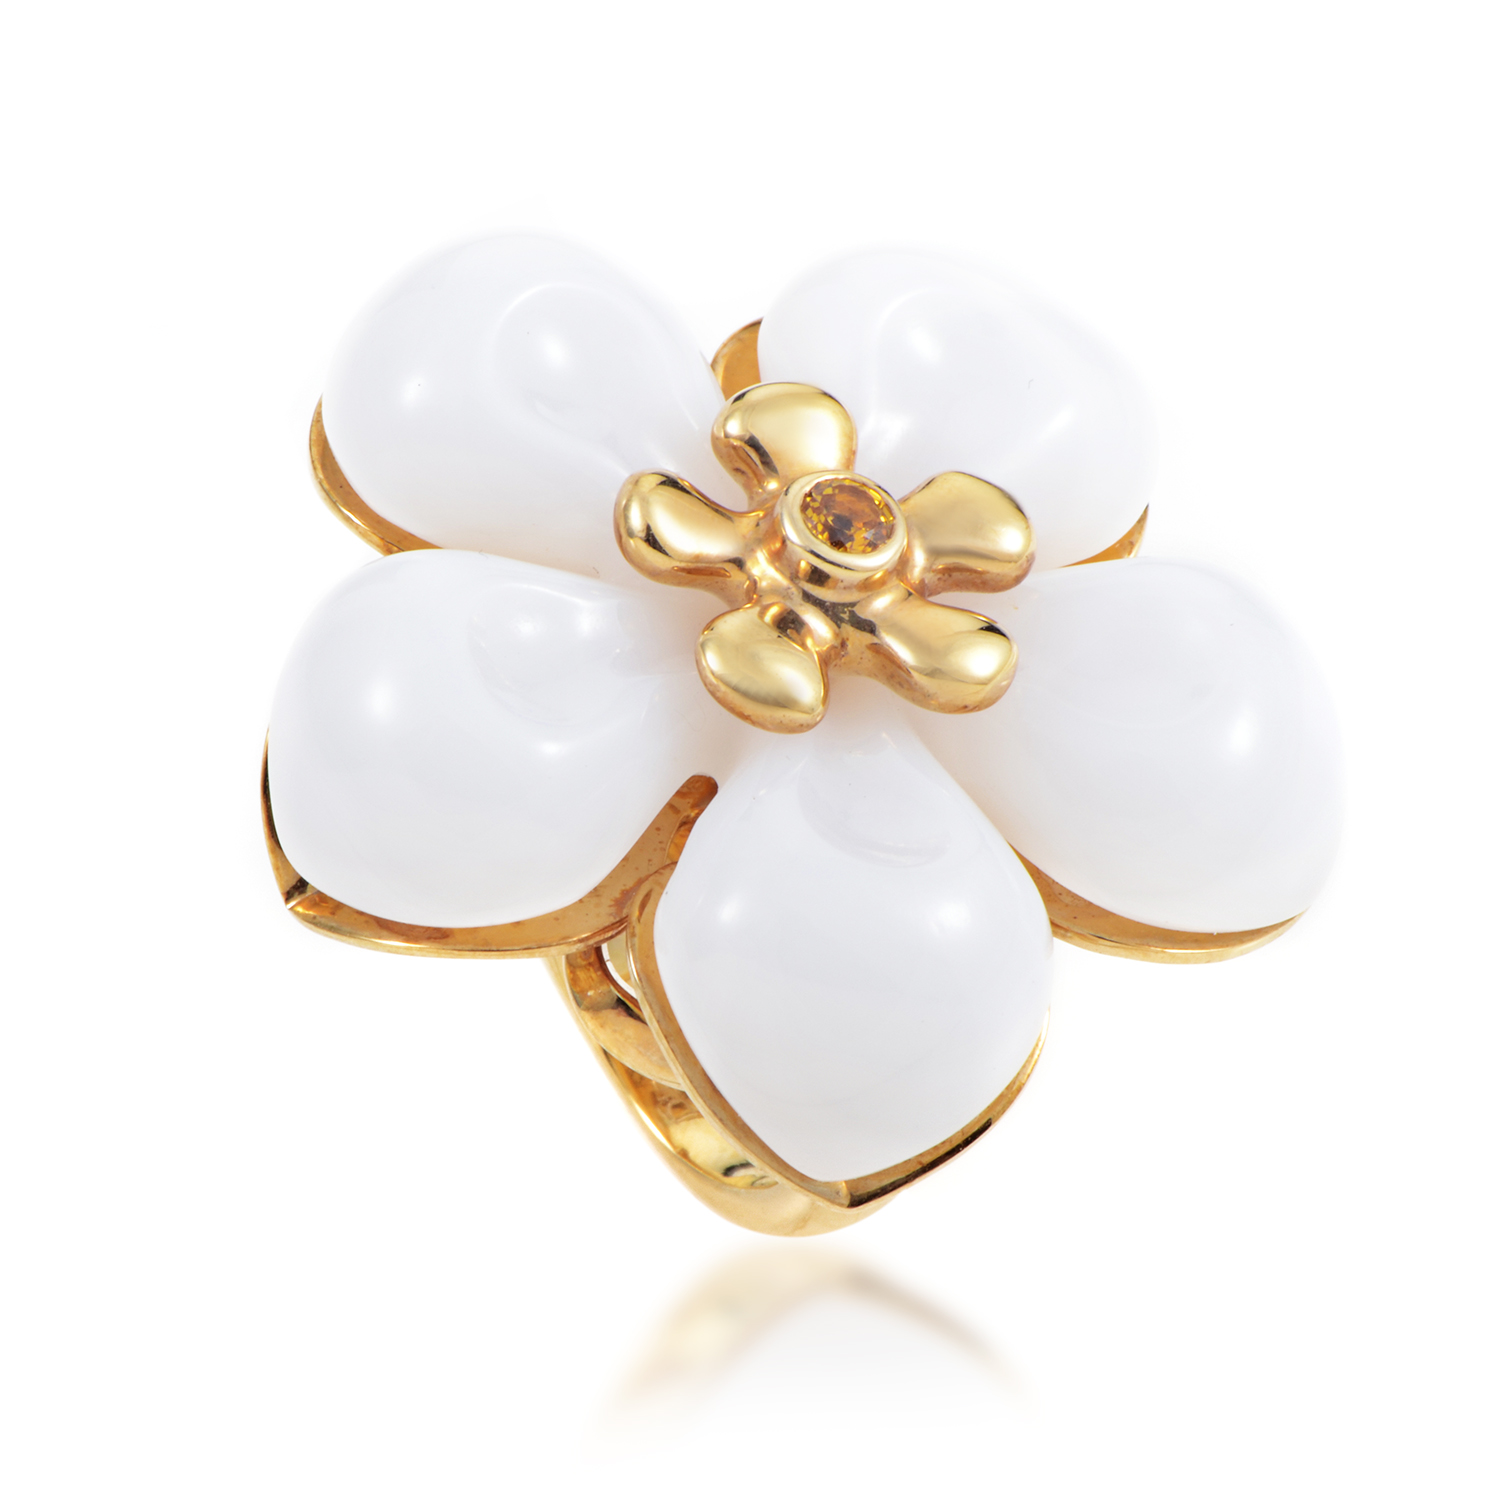 Dior Women's 18K Yellow Gold White Jade & Yellow Sapphire Flower Ring